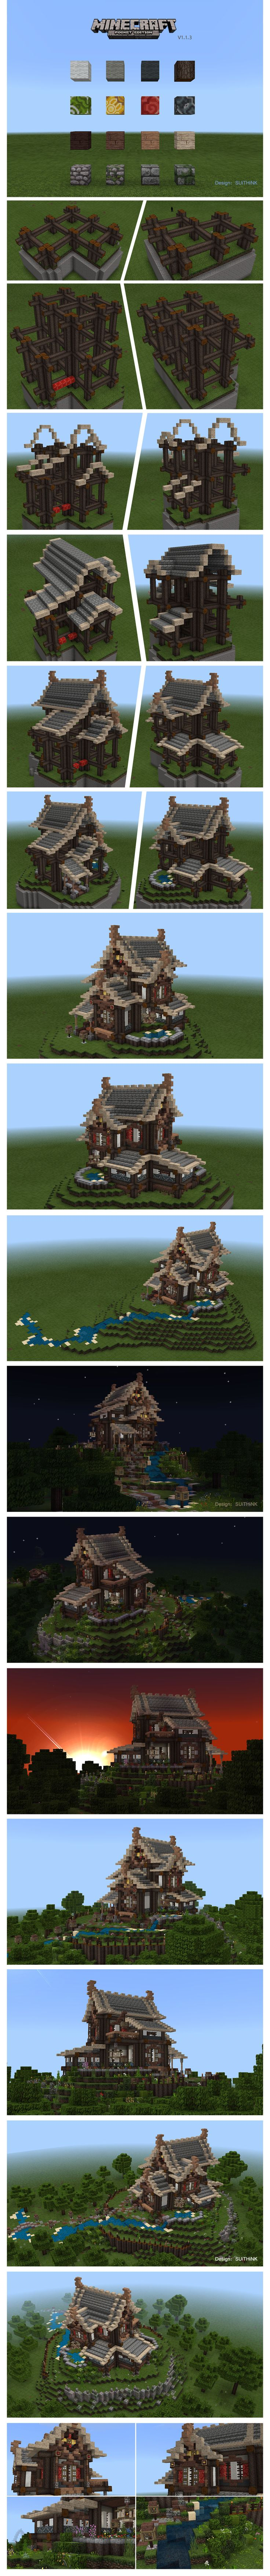 835 best minecraft images by steven so on pinterest minecraft